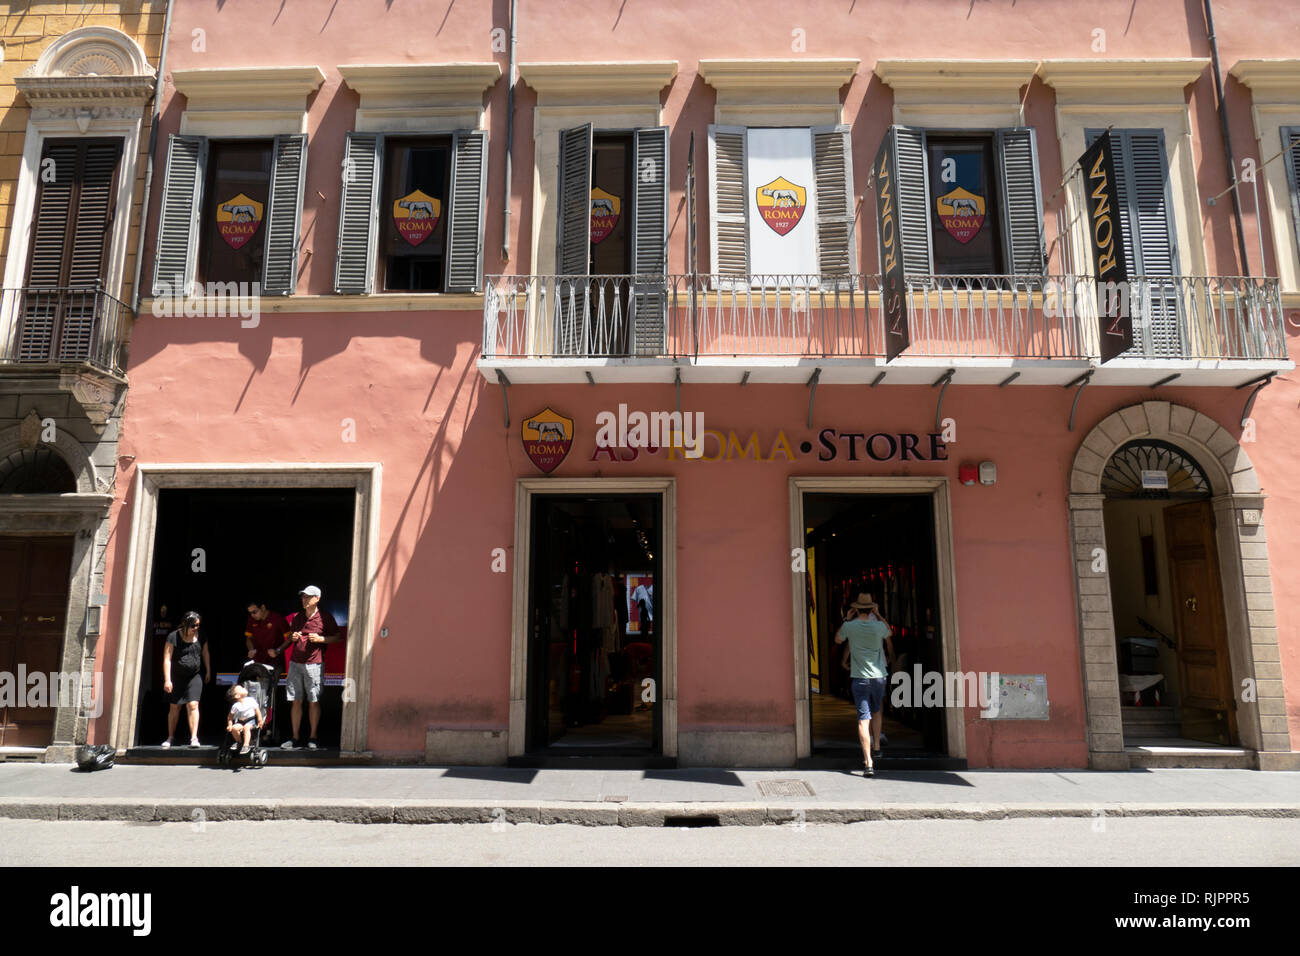 fanshop of the soccer club as rome in the old town of rome, italy Stock Photo